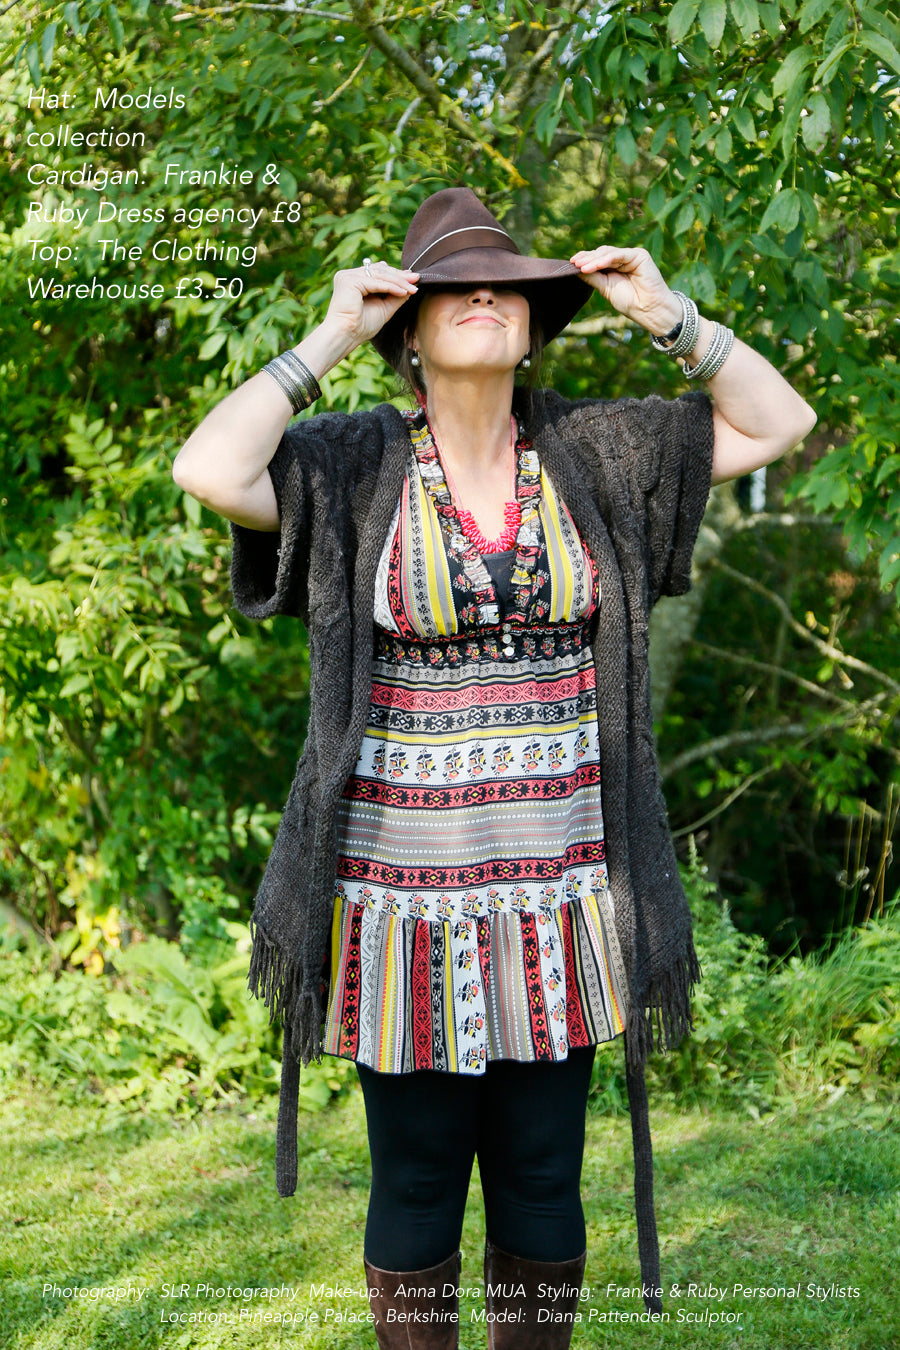 A model in a folk dress wearing secondhand clothes